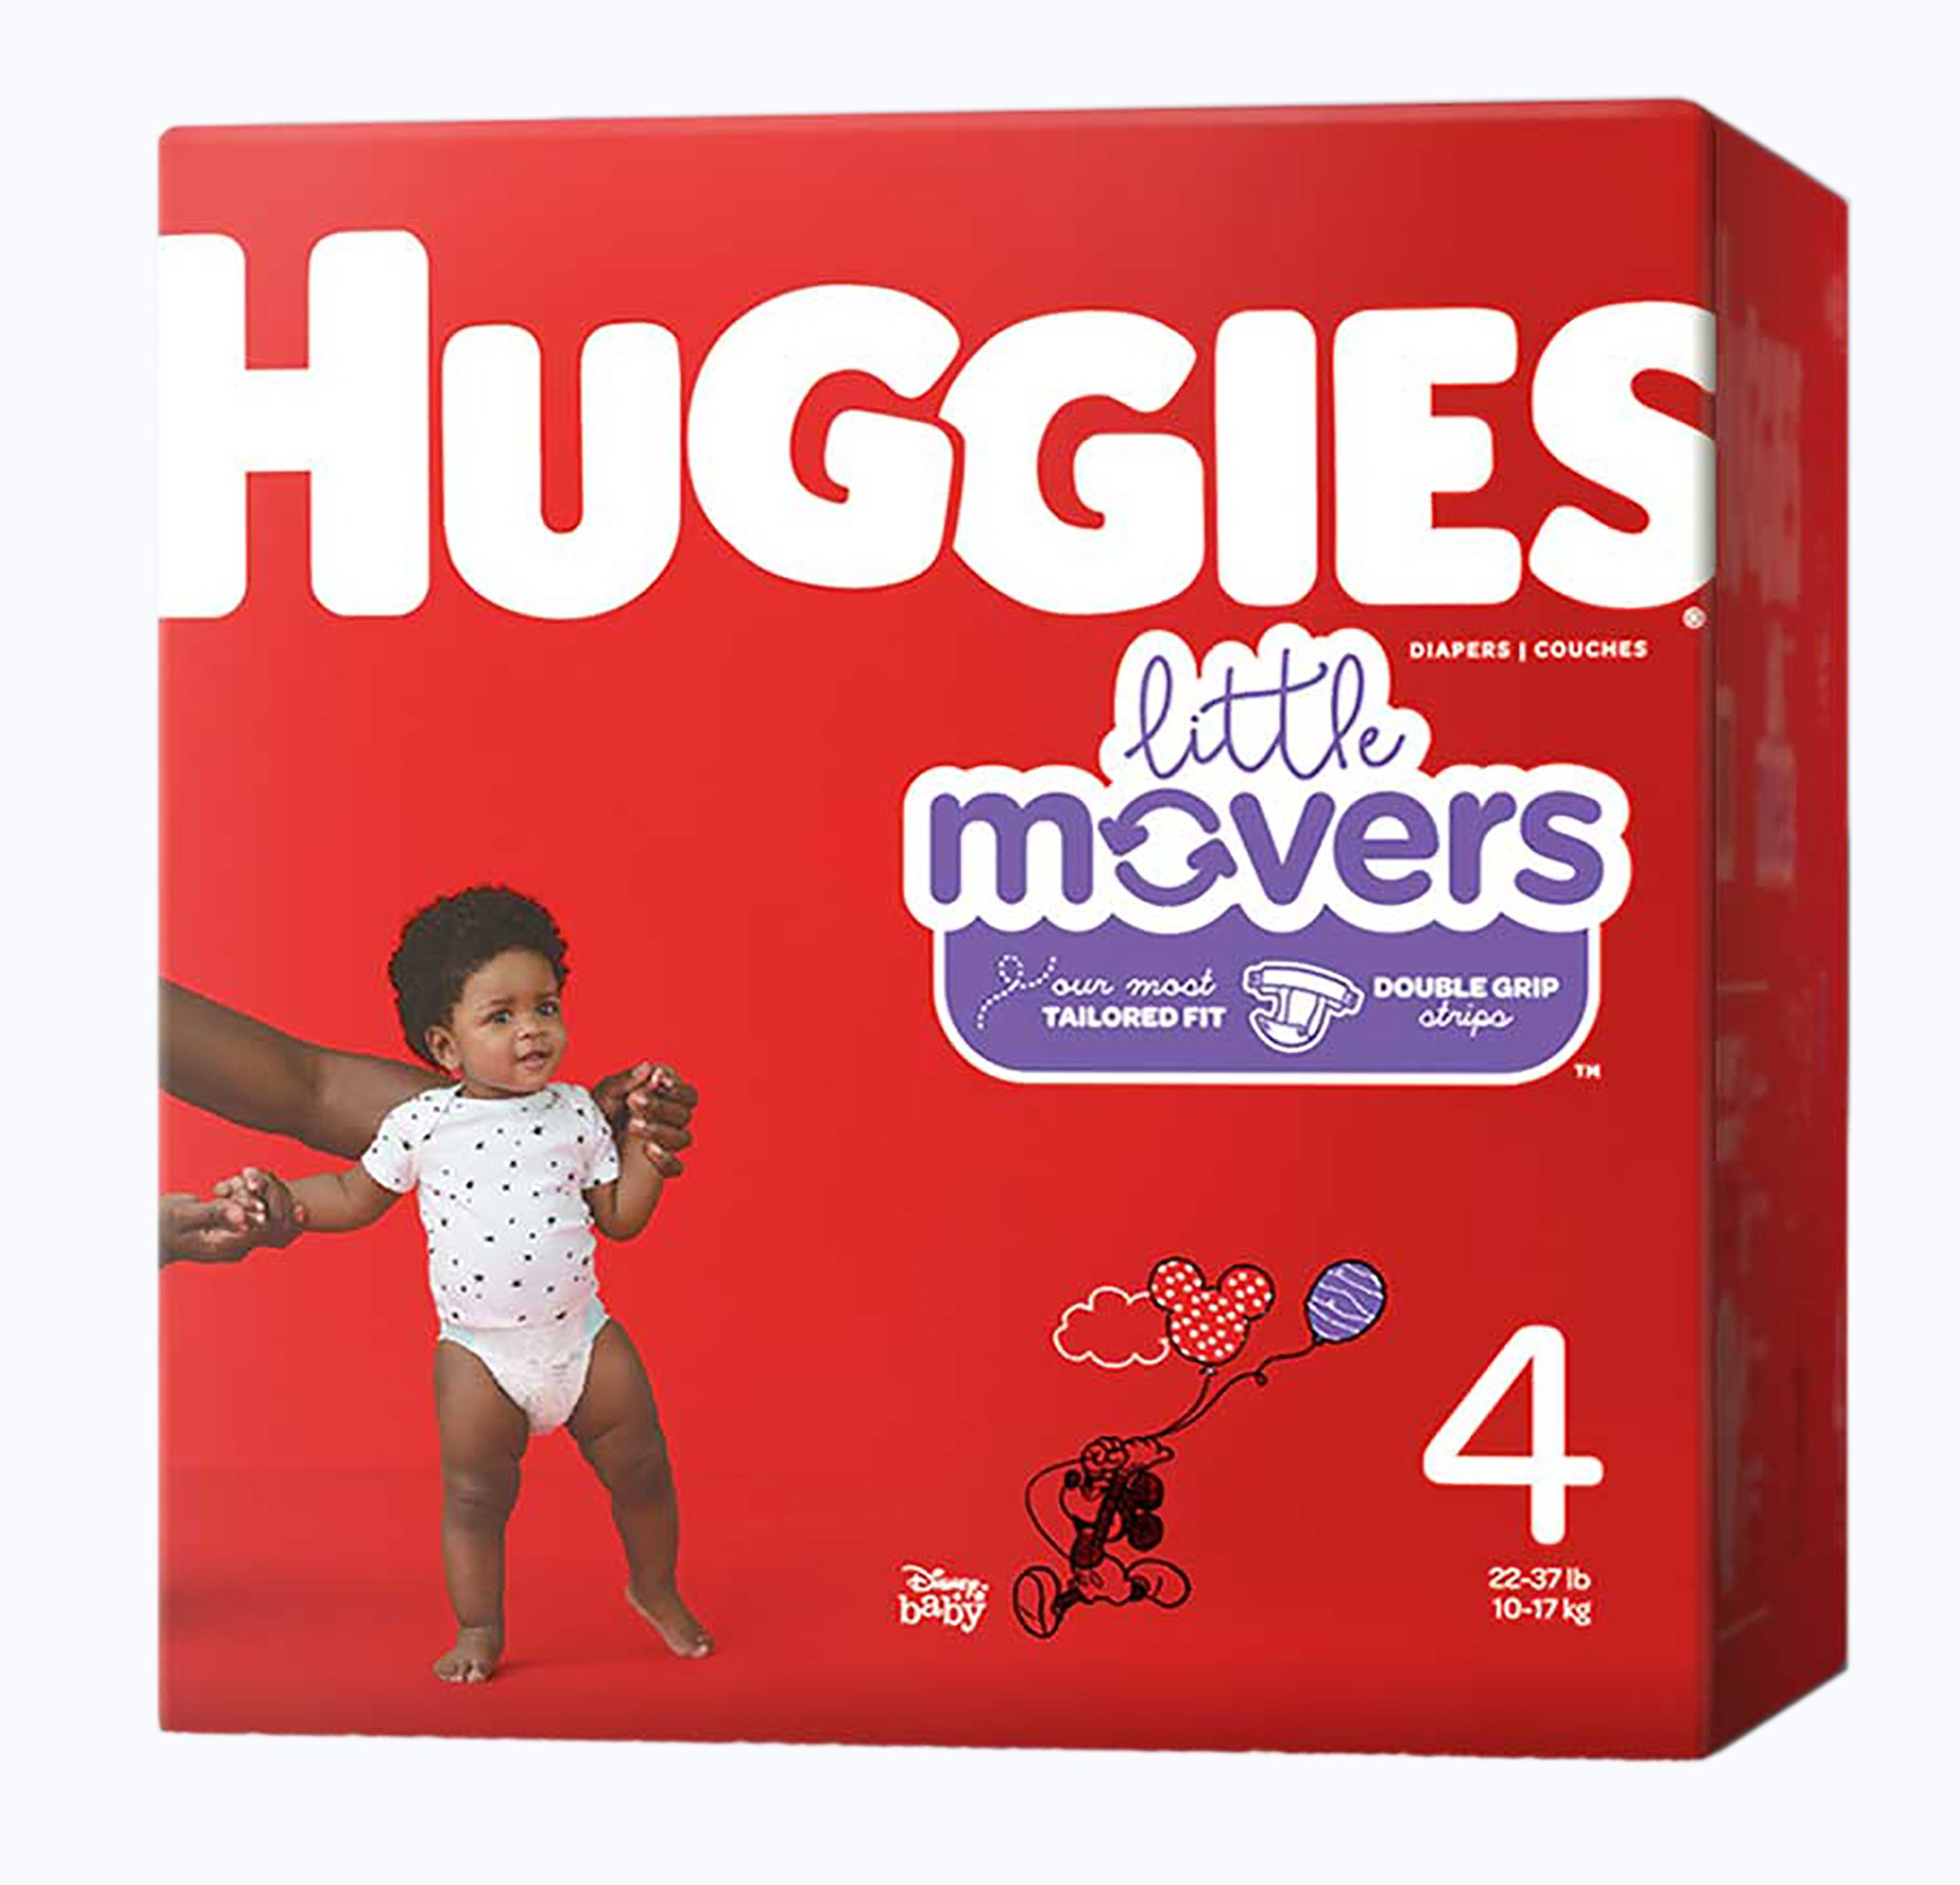 Huggies Little Movers Diapers, Moderate Absorbency, 49679, Size 4 (22-37 lbs) - Pack of 22